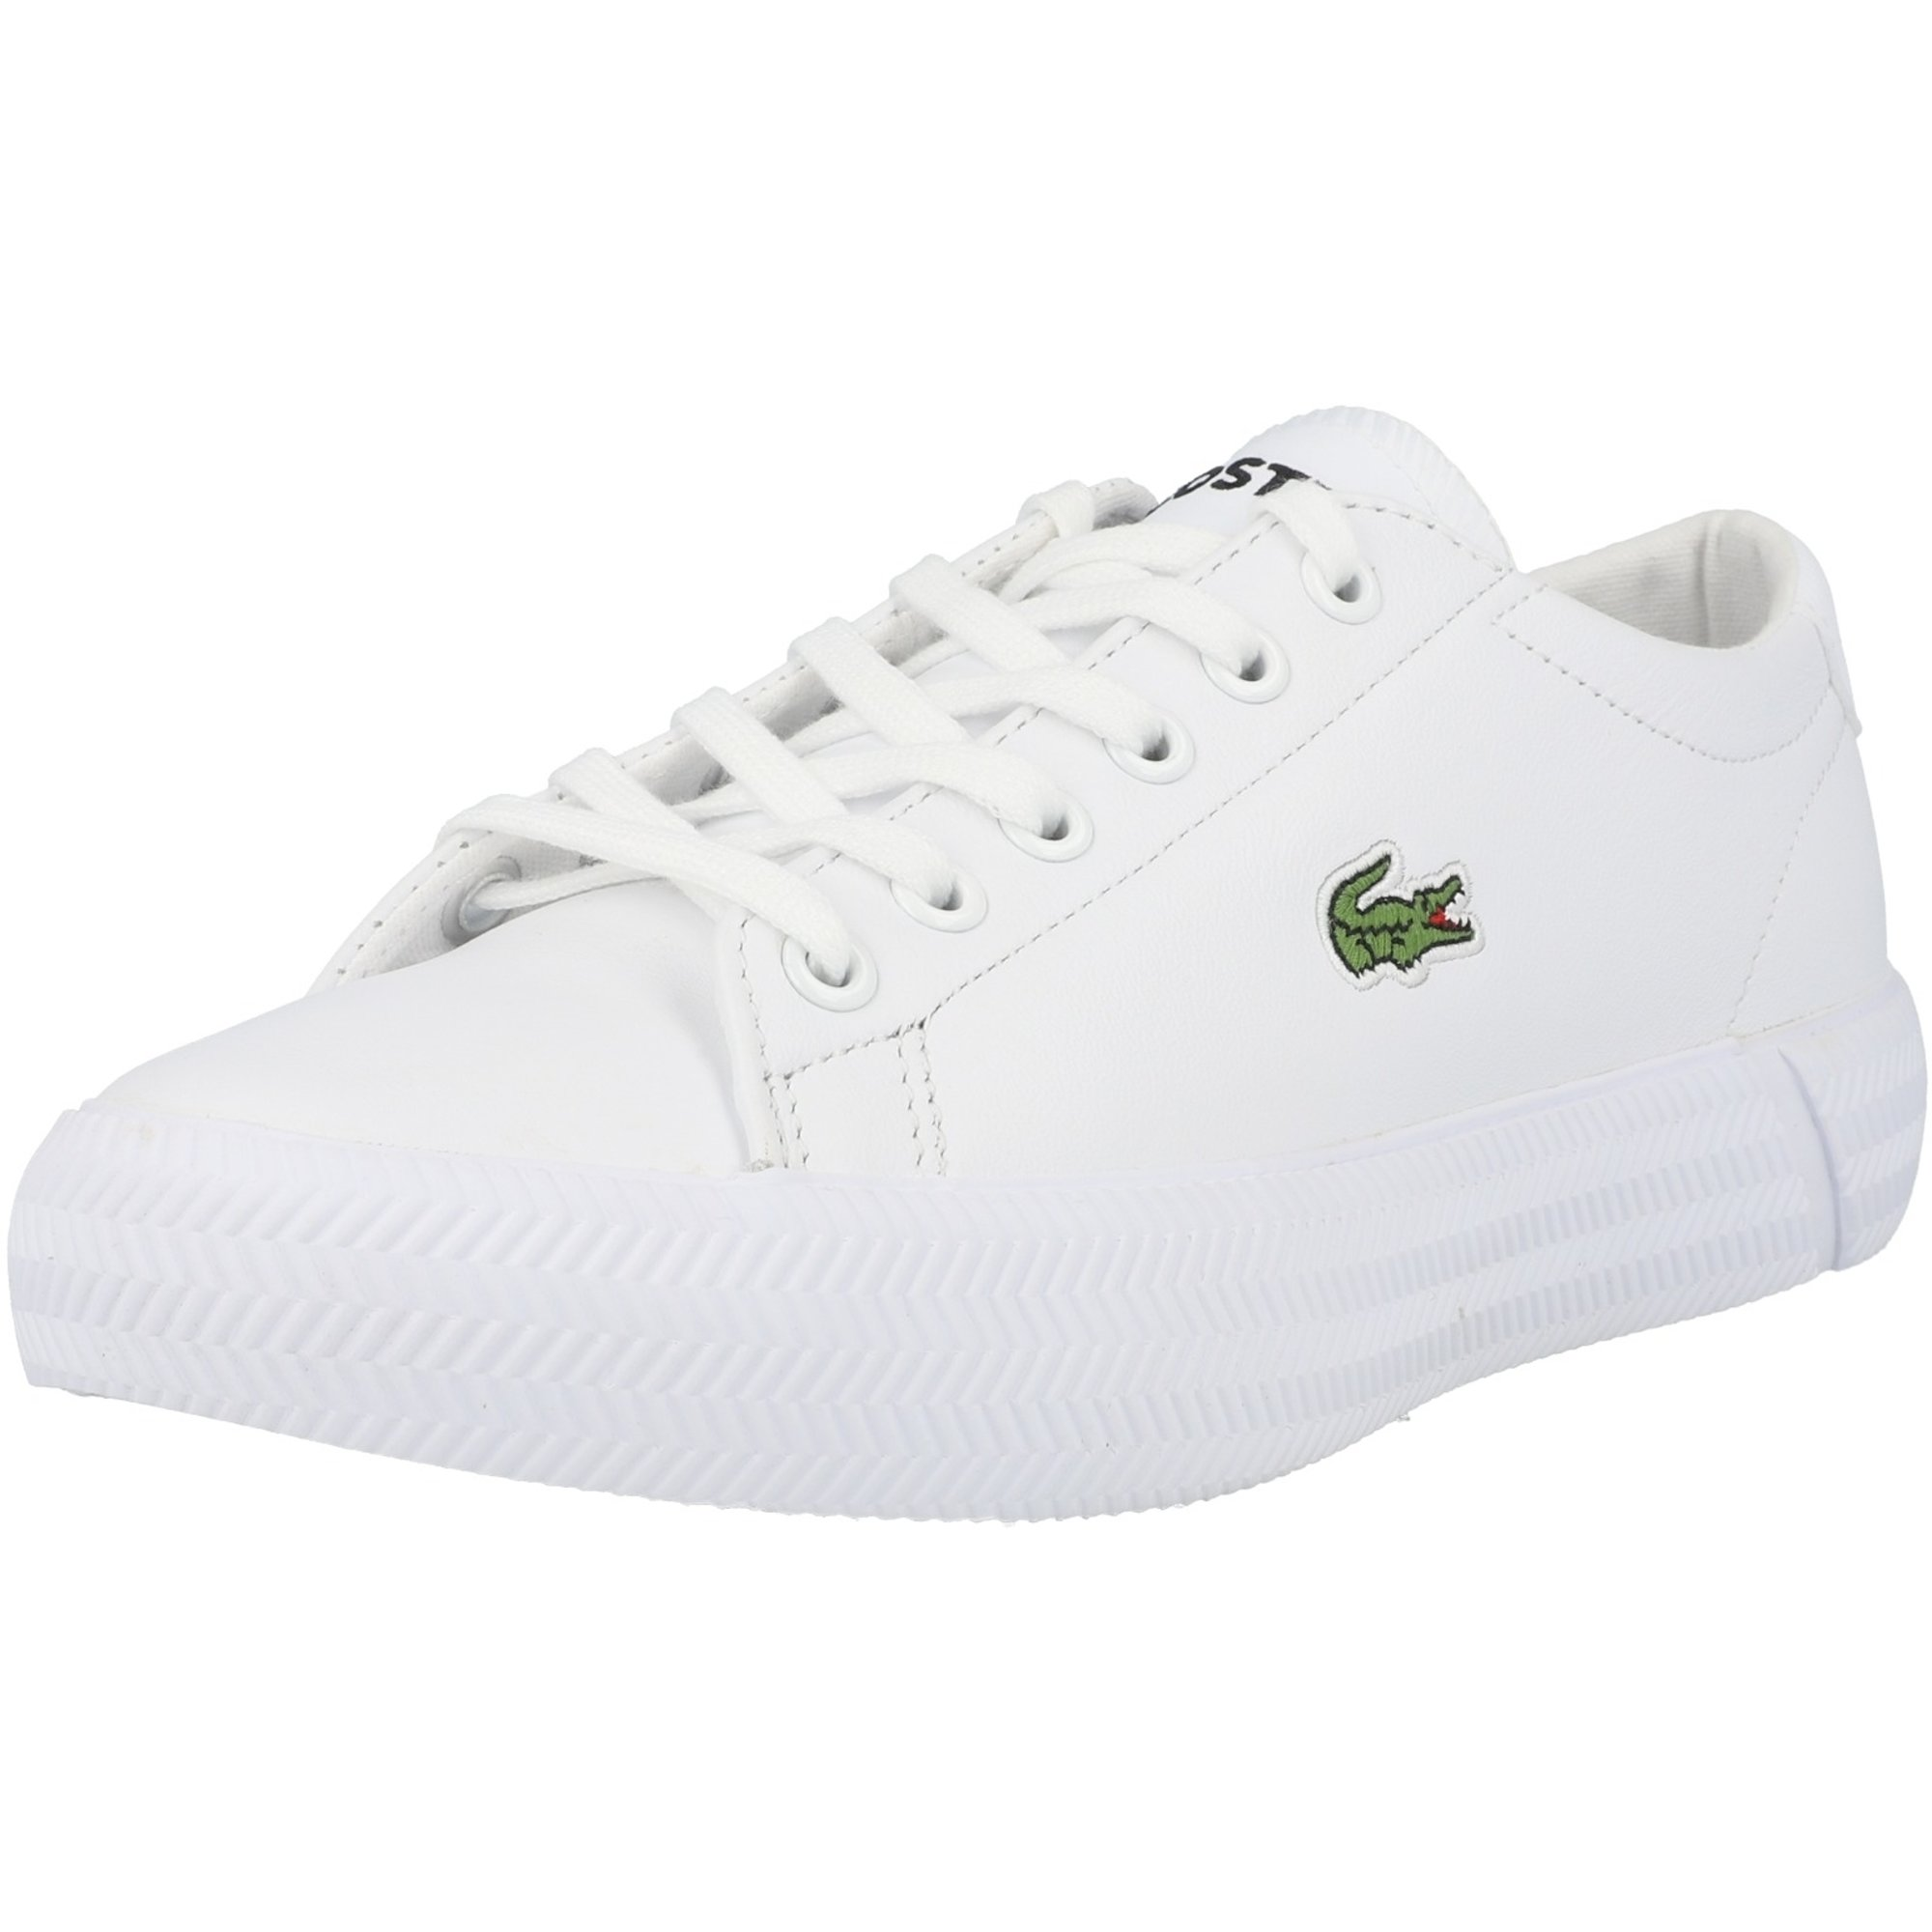 Lacoste Gripshot 0120 3 White Leather